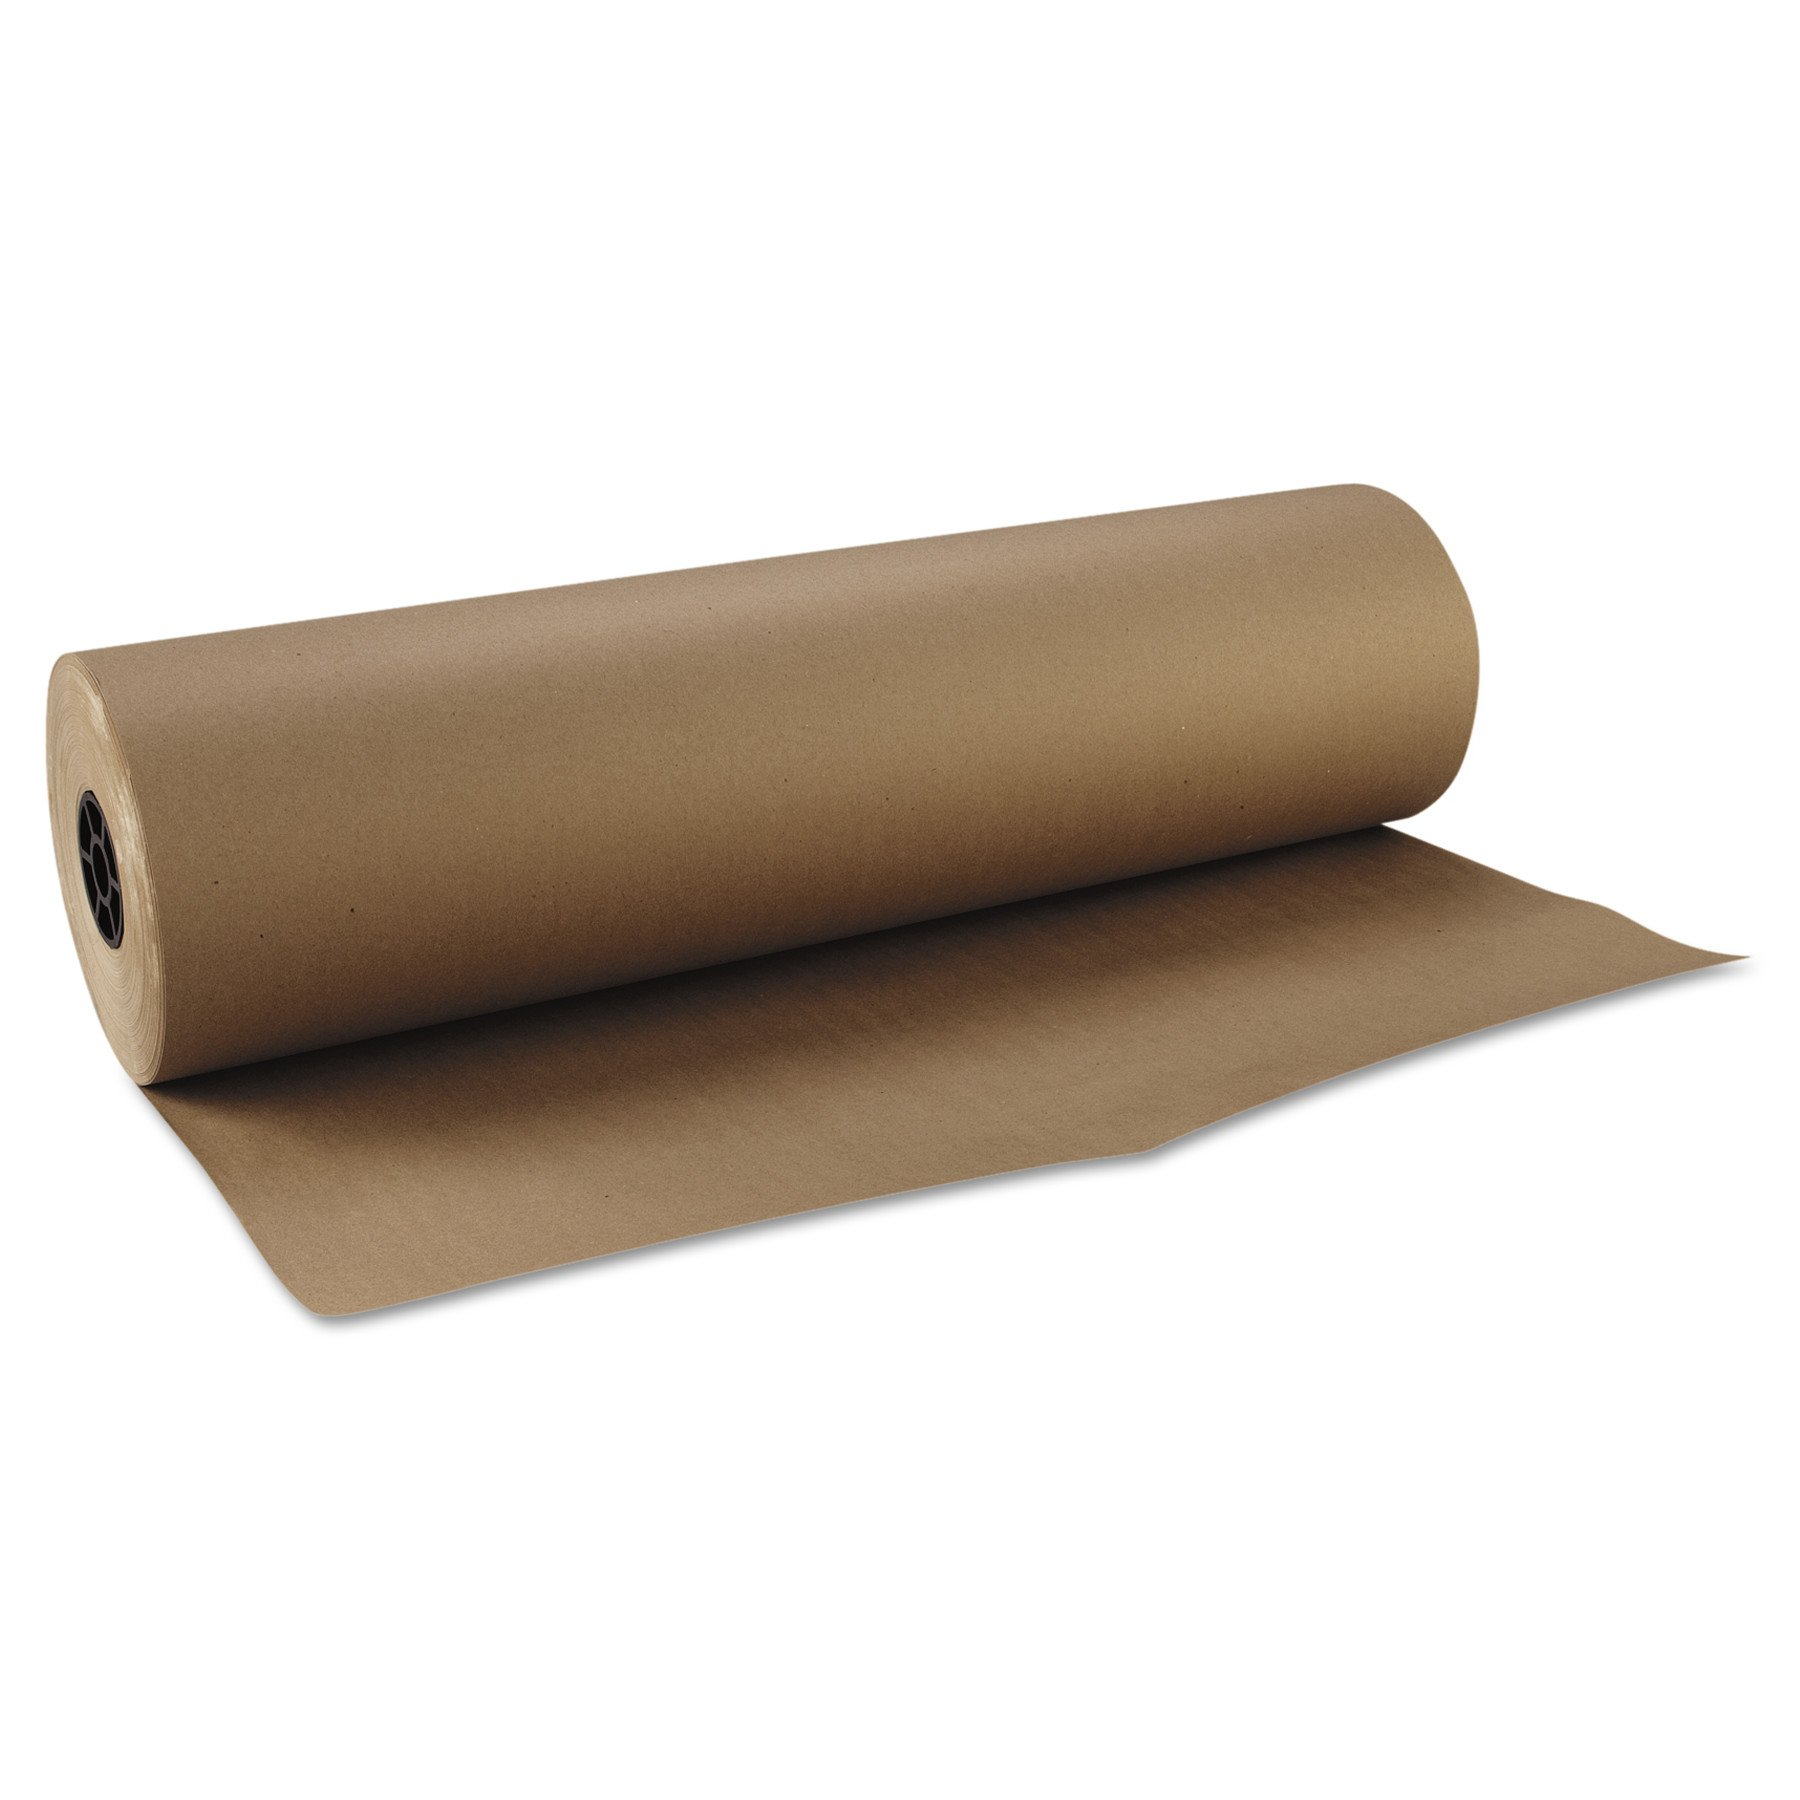 Boardwalk K3040765 Kraft Paper, 30 in x 765 ft, Brown by Boardwalk